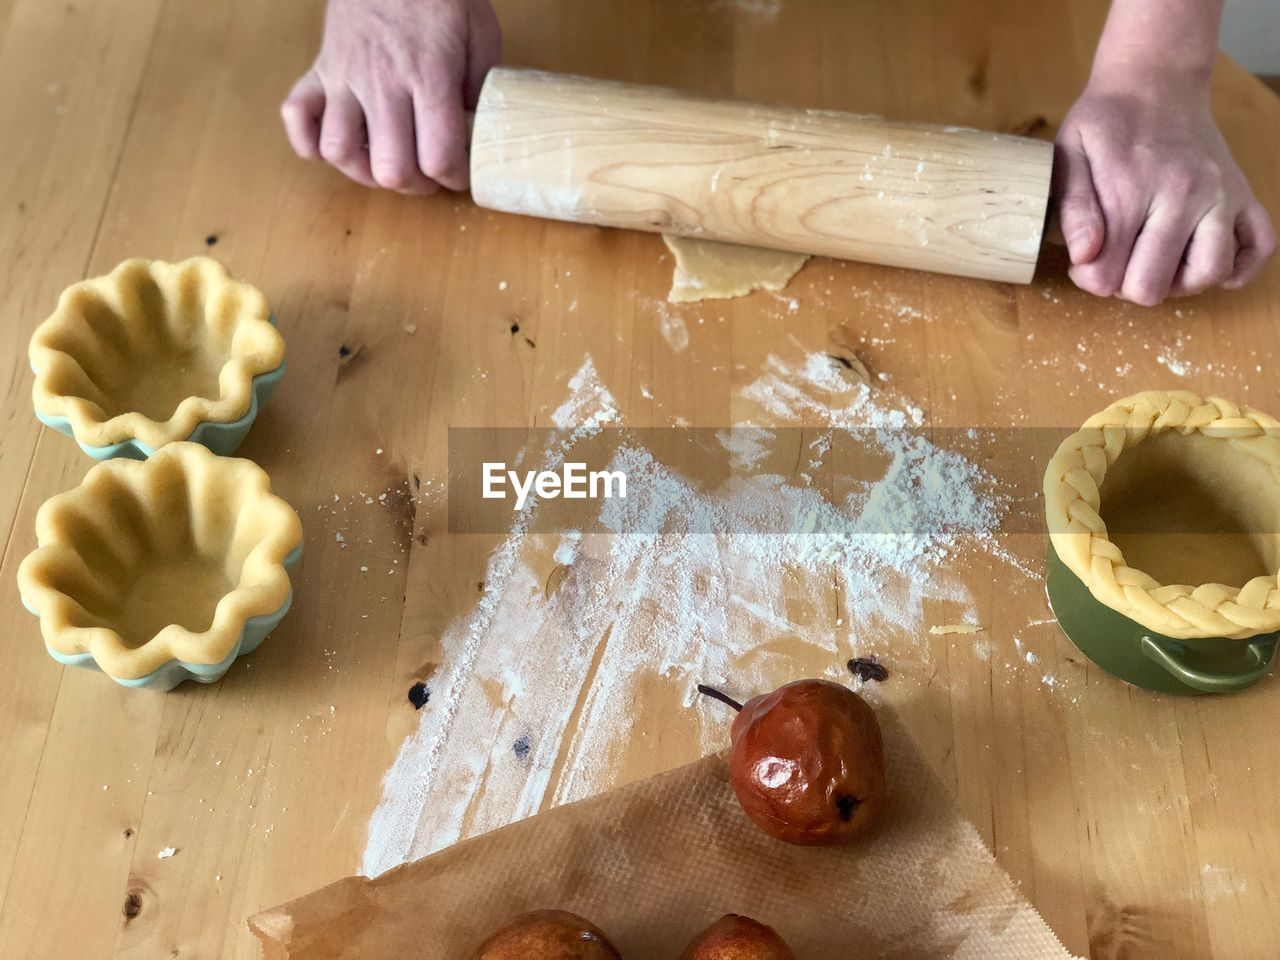 human hand, food and drink, food, hand, one person, human body part, table, dough, preparation, real people, indoors, preparing food, freshness, unrecognizable person, high angle view, flour, lifestyles, rolling pin, kitchen utensil, body part, finger